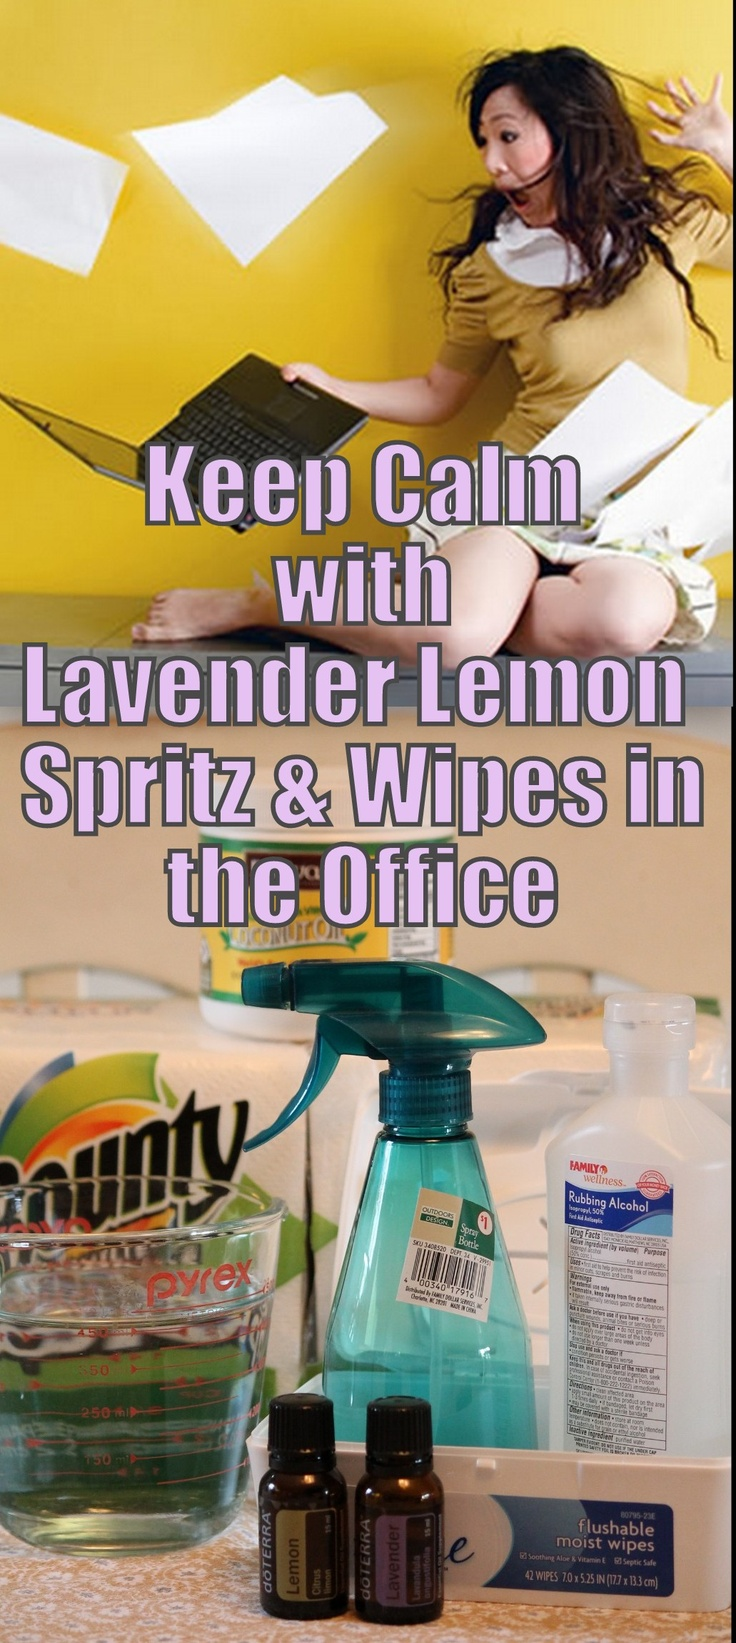 Keep Calm with Lavender Lemon Spritz & Wipes in the Office!